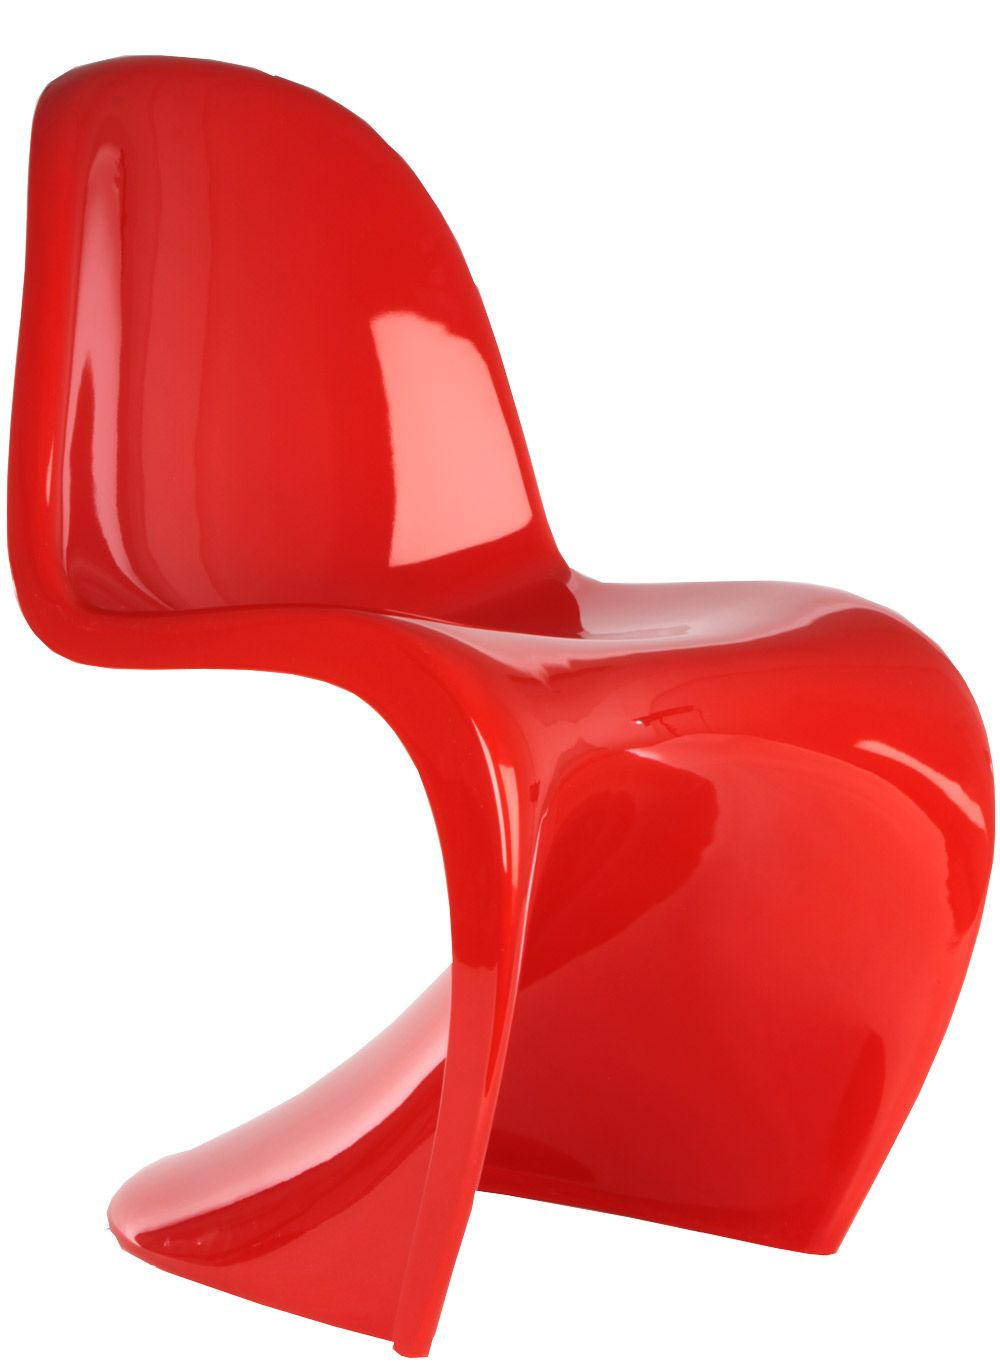 Attrayant Phanton Vitra. I Want One Of This.